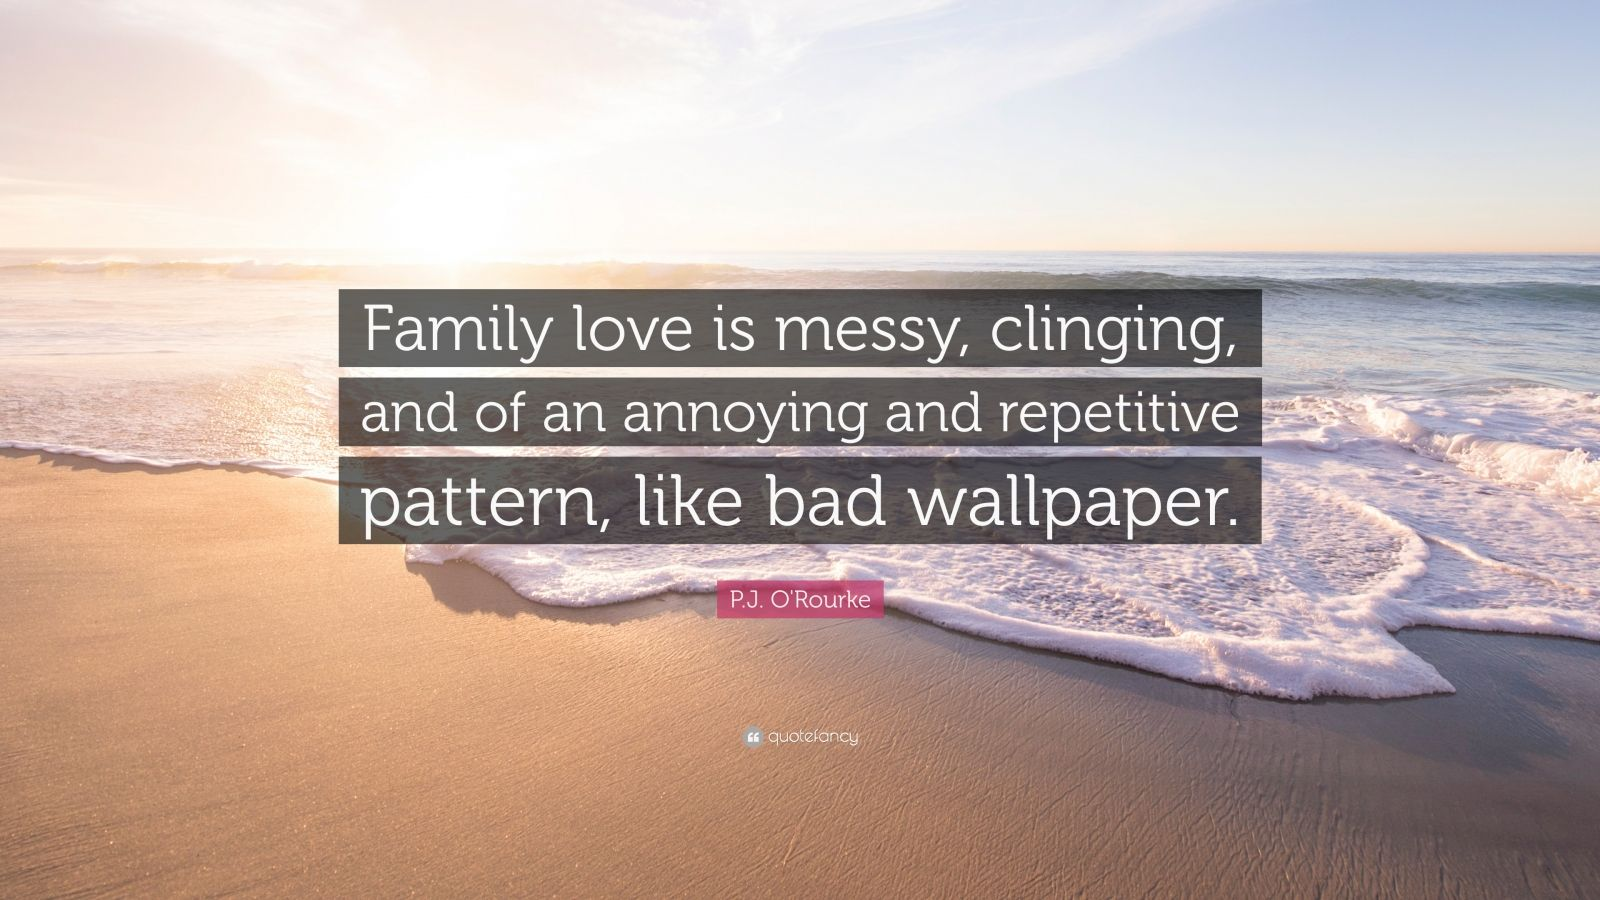 """P.J. O'Rourke Quote: """"Family love is messy, clinging, and of an annoying and repetitive pattern, like bad wallpaper."""""""